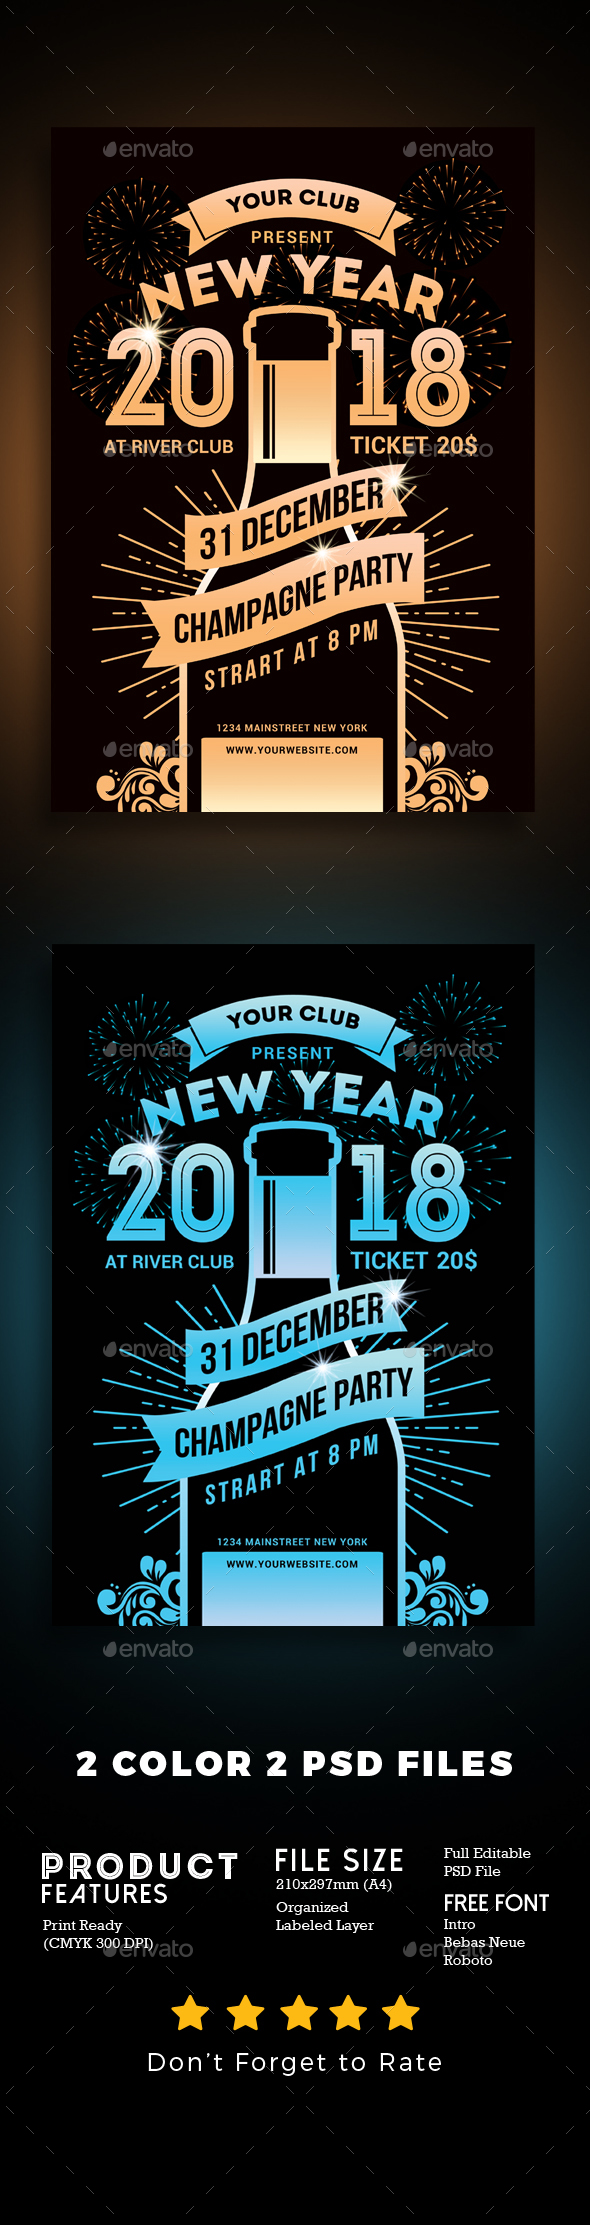 New Year Champagne Party Flyer - Events Flyers